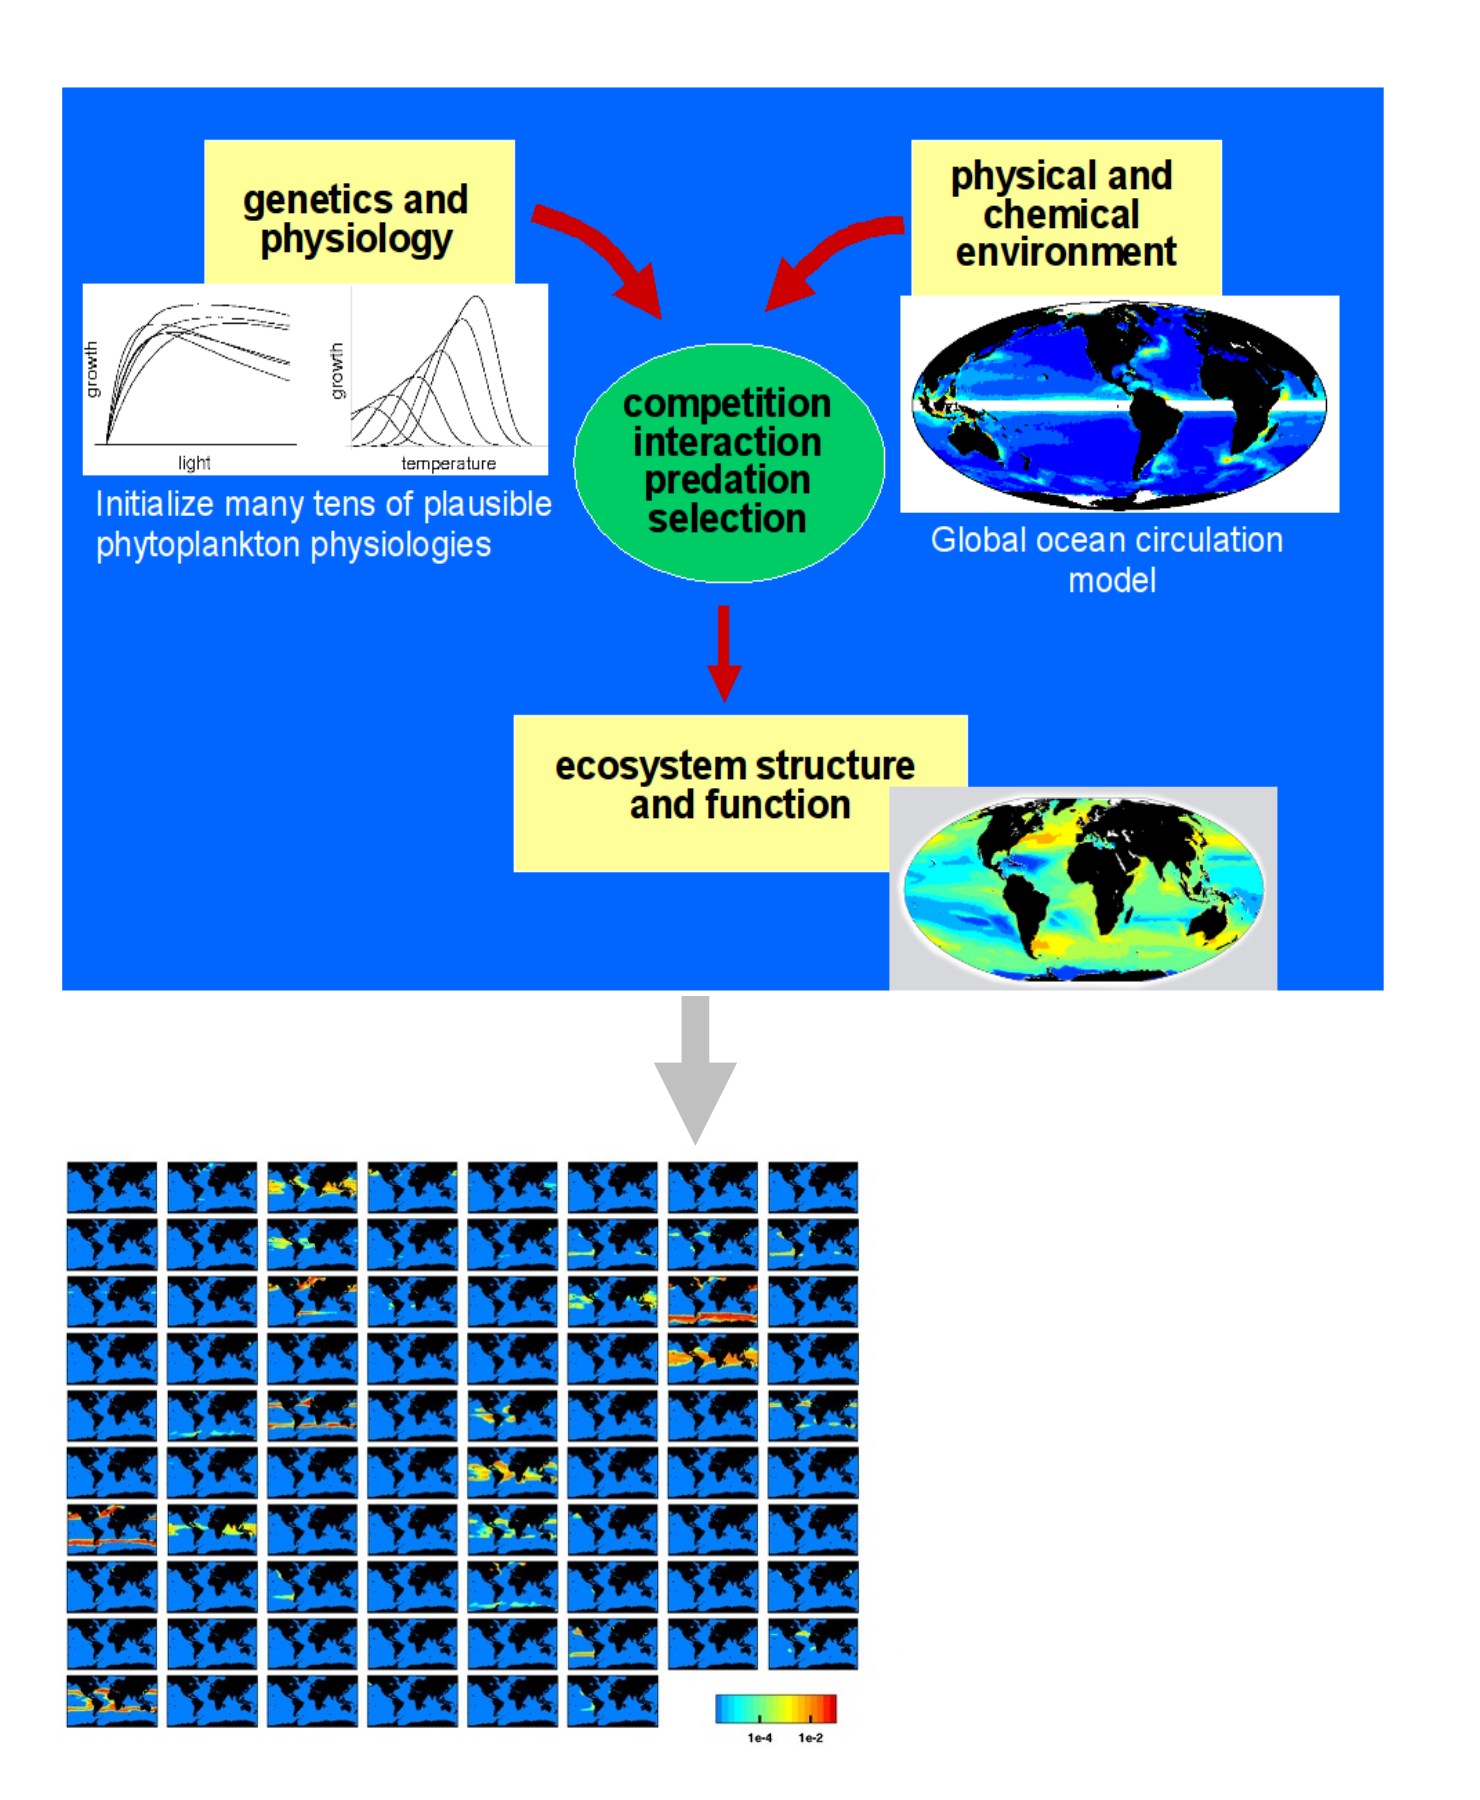 "Figure 1. Illustration of the key components in the self-assembling phytoplankton community model. After some years of interaction, the fittest ""types"" persist and occupy distinct habitats."